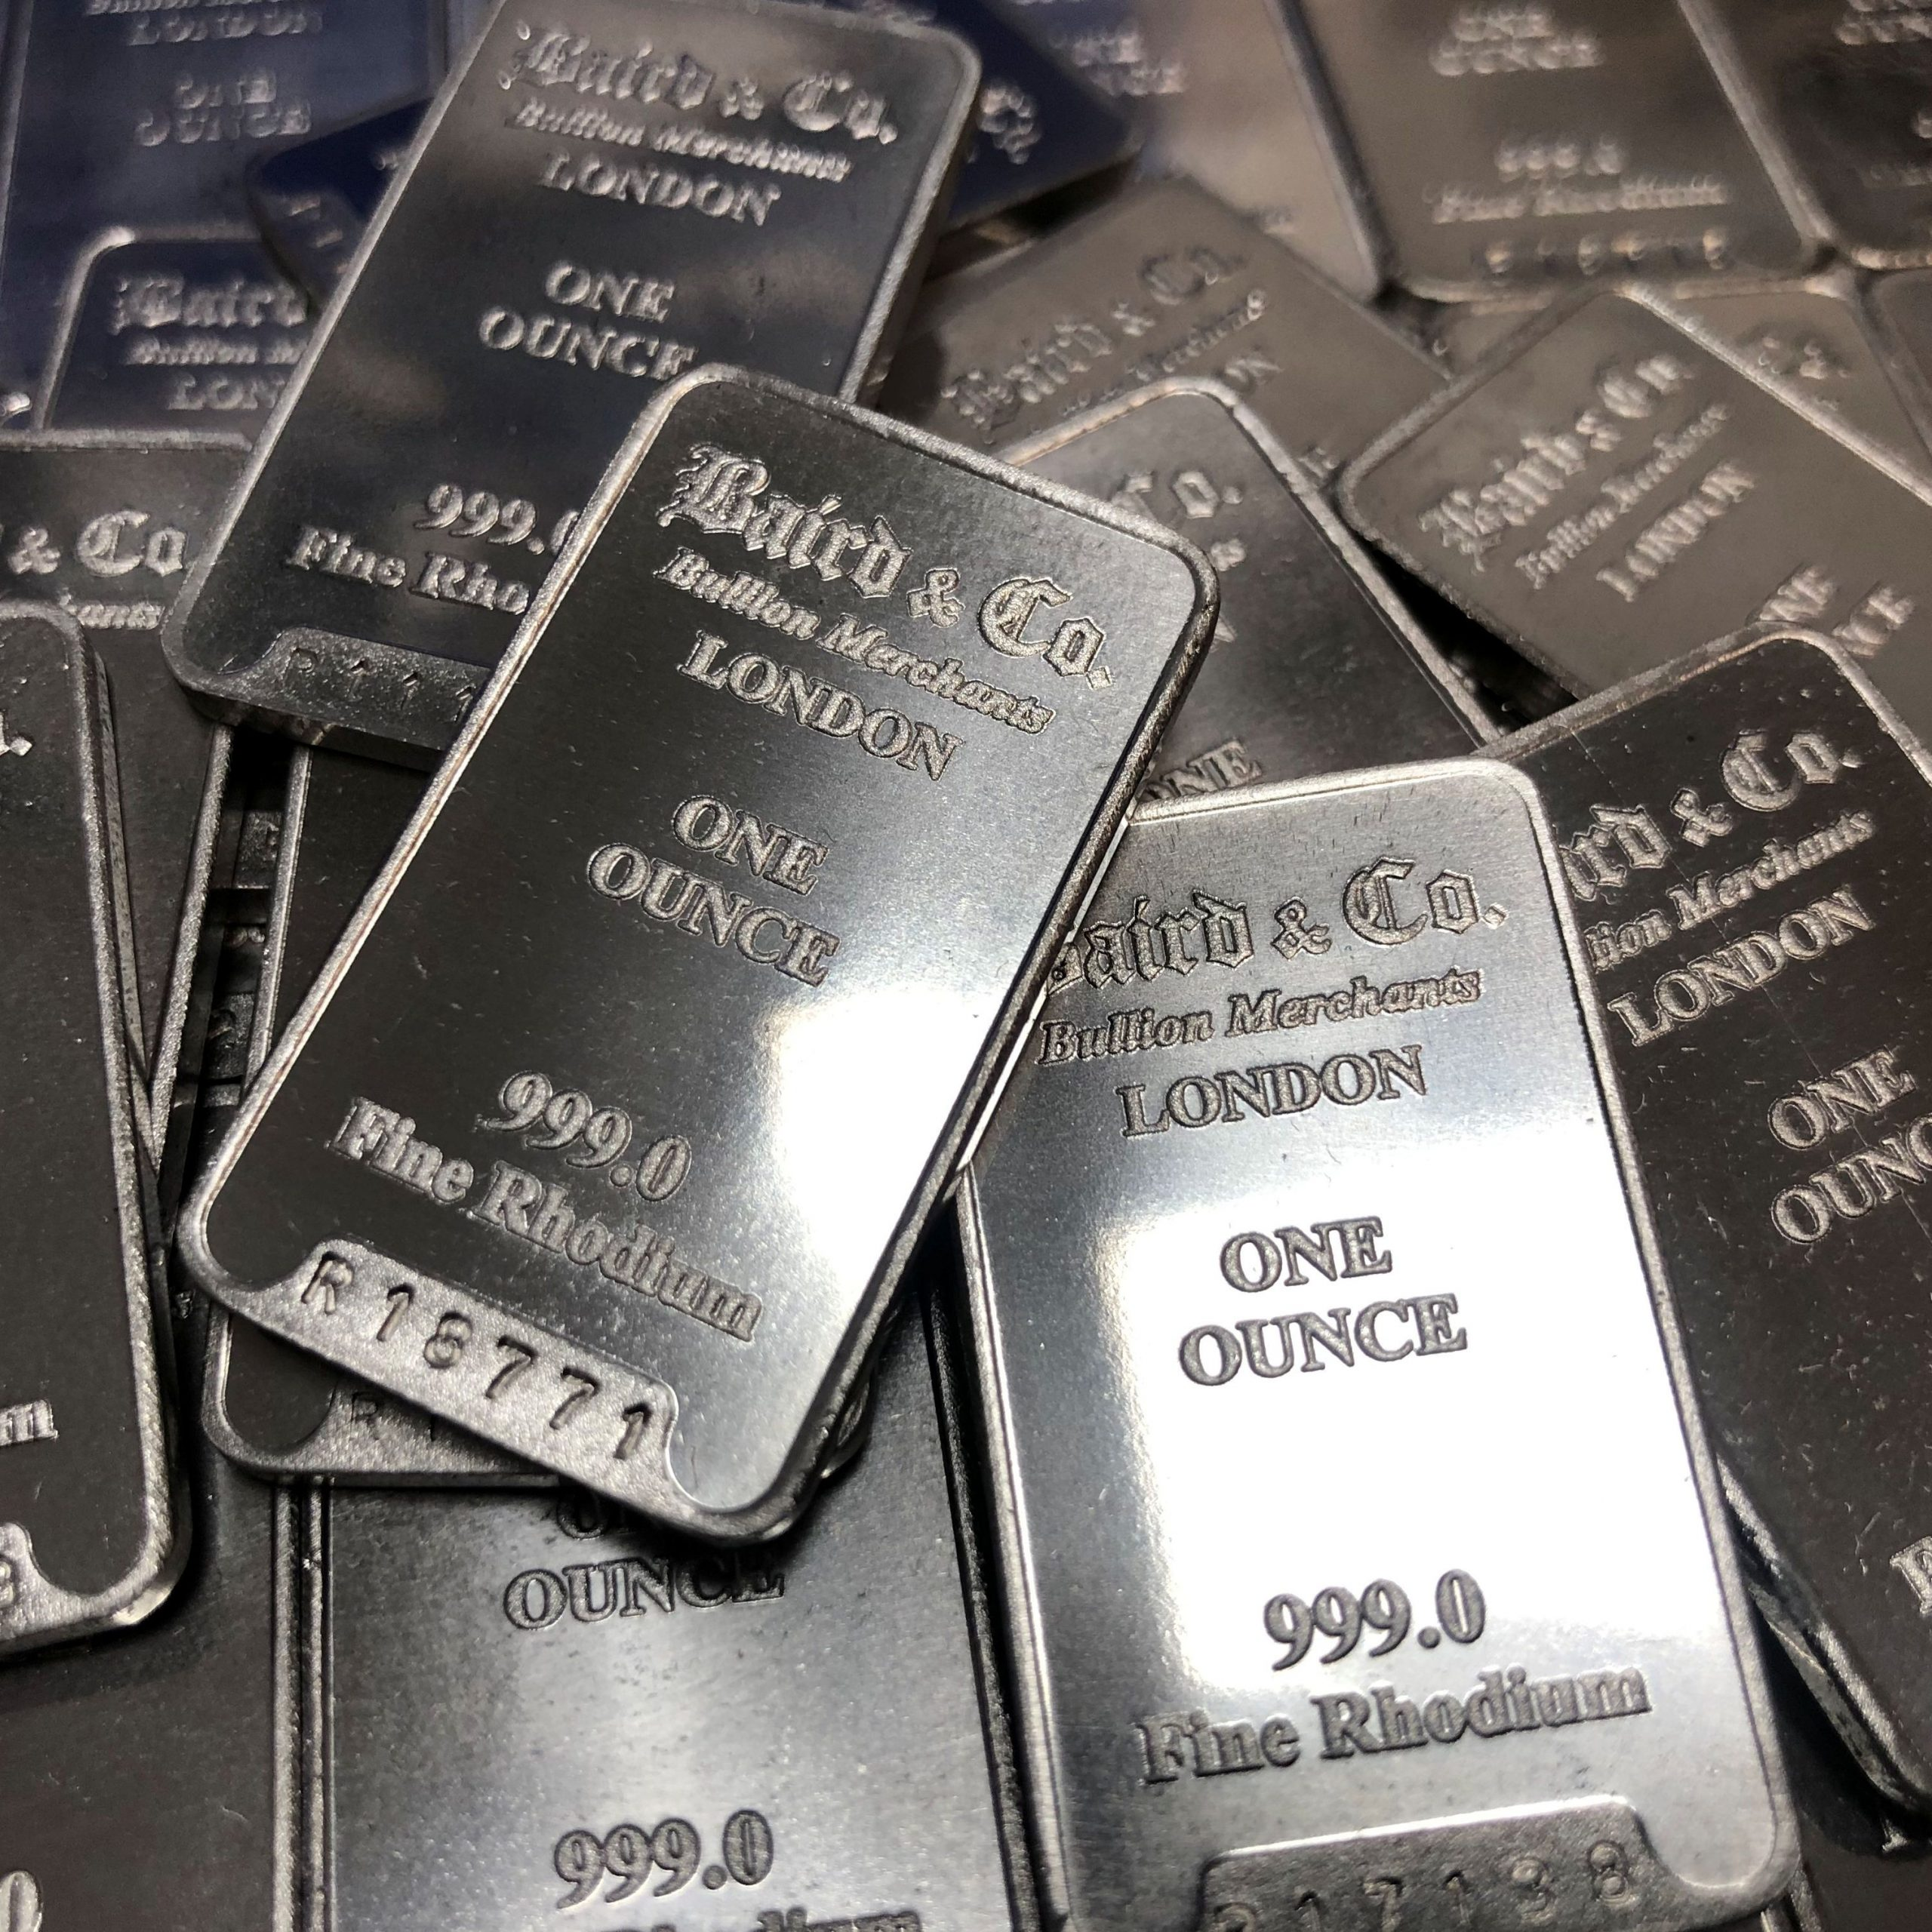 Vermillion Enterprises buys and sells Rhodium Bullion. Rhodium Bars, Rounds, and Coins. No collection is too large or too small. Serving Brooksville, Crystal River, Dade City, Clearwater, Floral City, Gainesville, Holiday FL, Homosassa, Hudson FL, Inverness FL, Land O Lakes, Lecanto, Lutz, Odessa FL, Palm Harbor, Spring Hill, Tampa FL, Tarpon Springs, Wesley Chapel, Zephyrhills